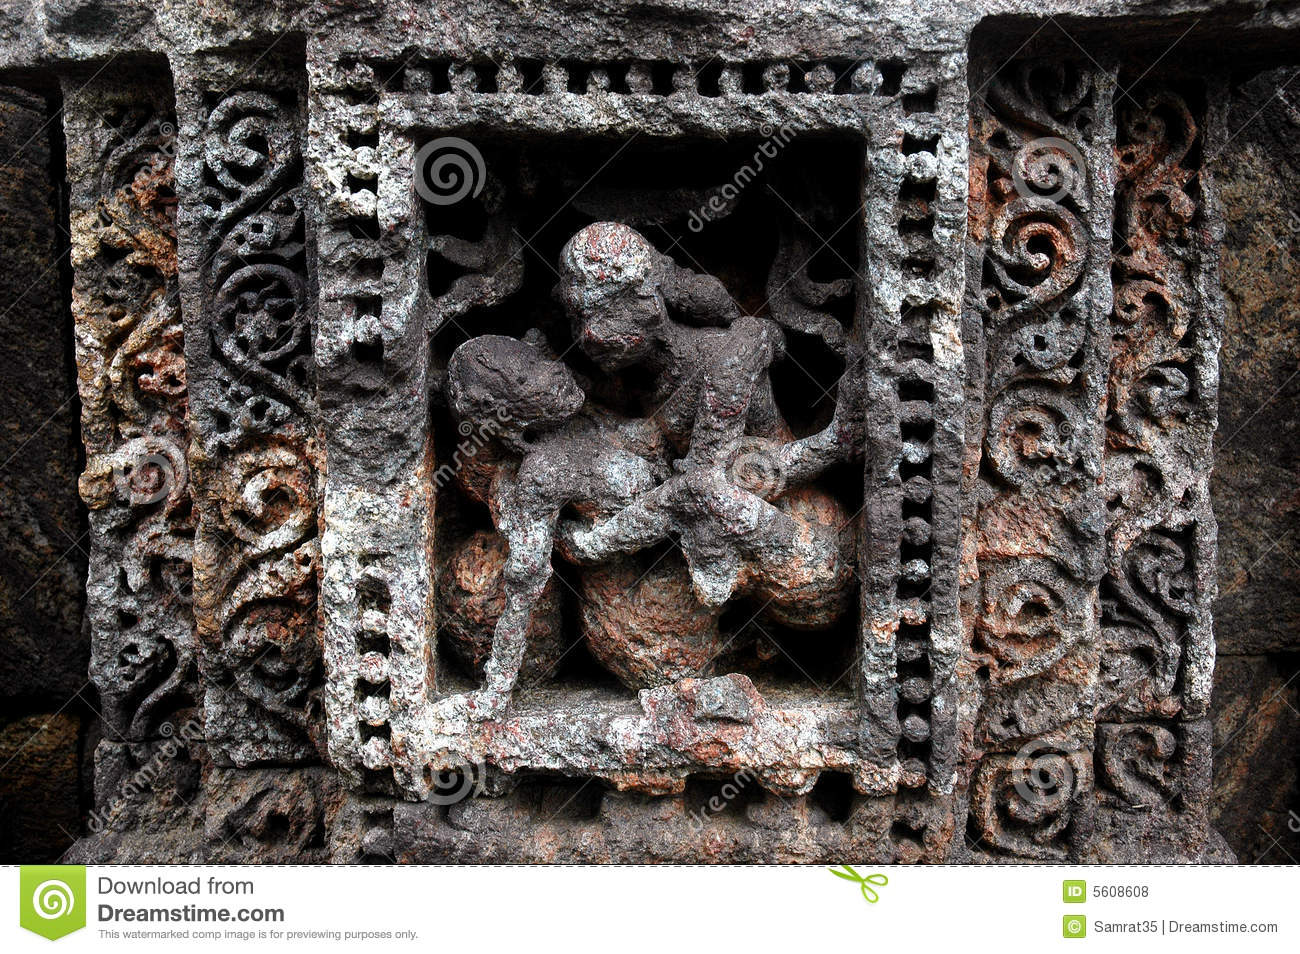 Erotic Indian Temple Sculpture Stock Photo - Image Of Sandstone, Imagery 5608608-4699